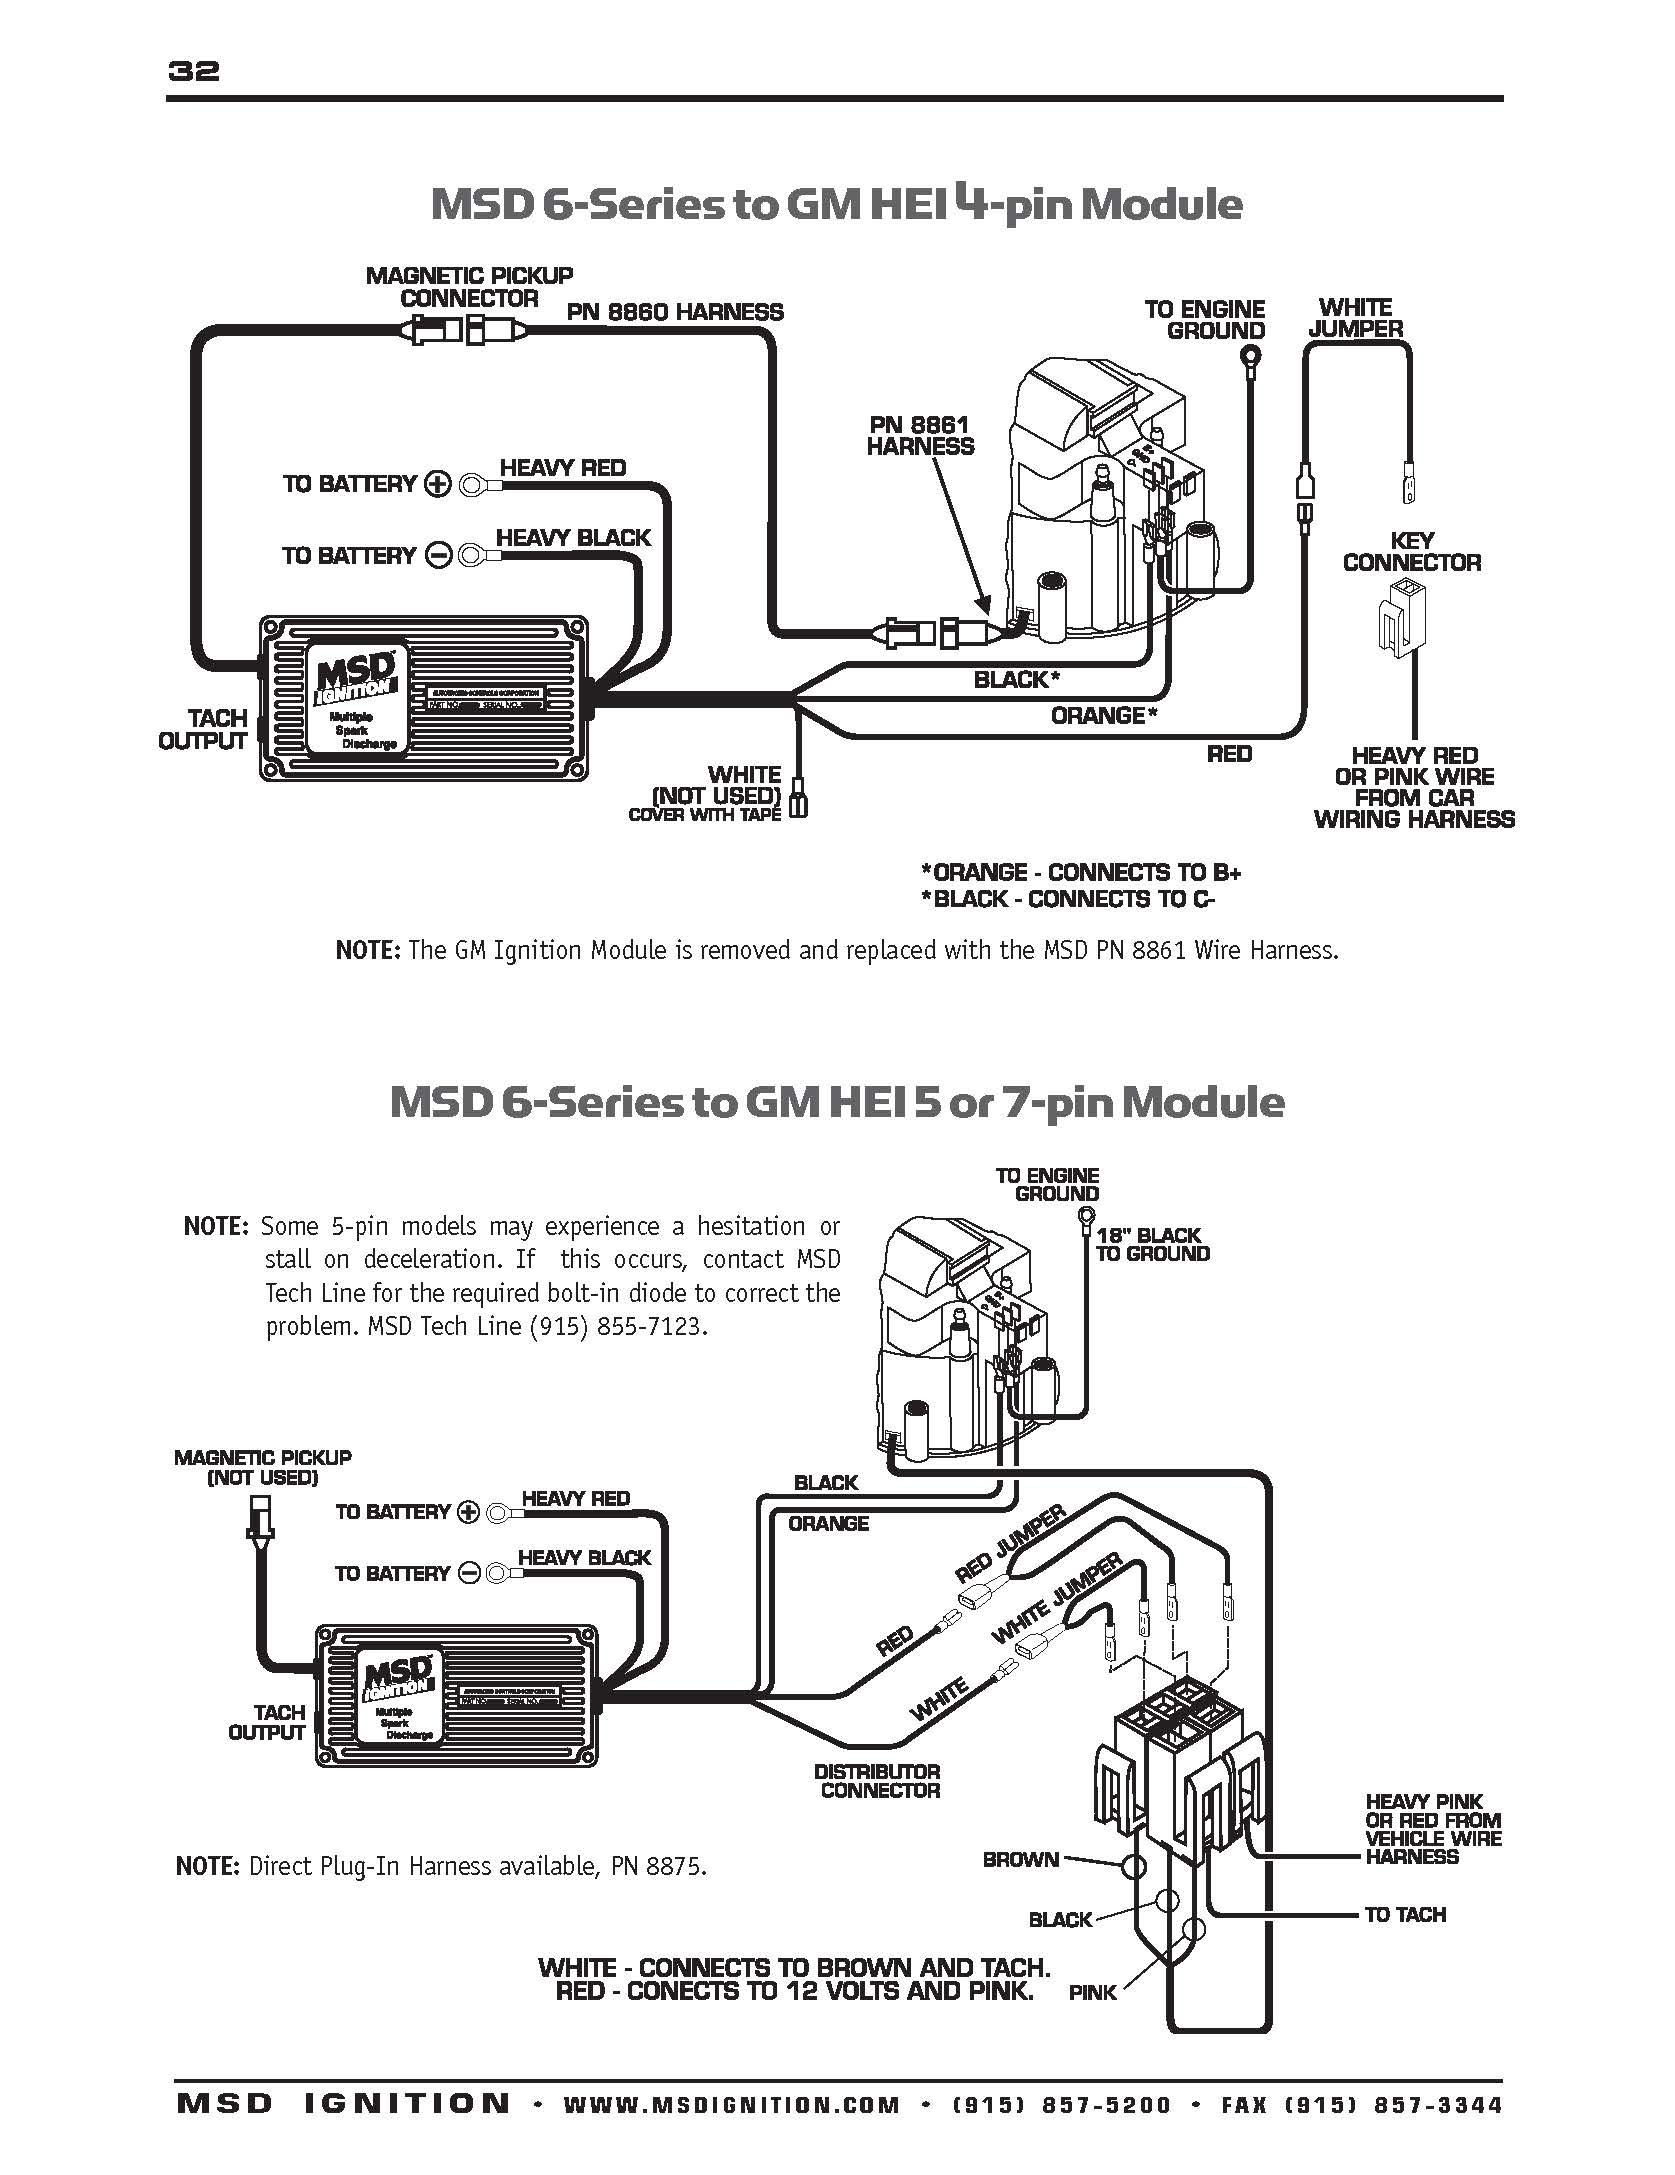 Msd Ignition 6Al Wiring Diagram | Manual E-Books - Msd Digital 6Al Wiring Diagram